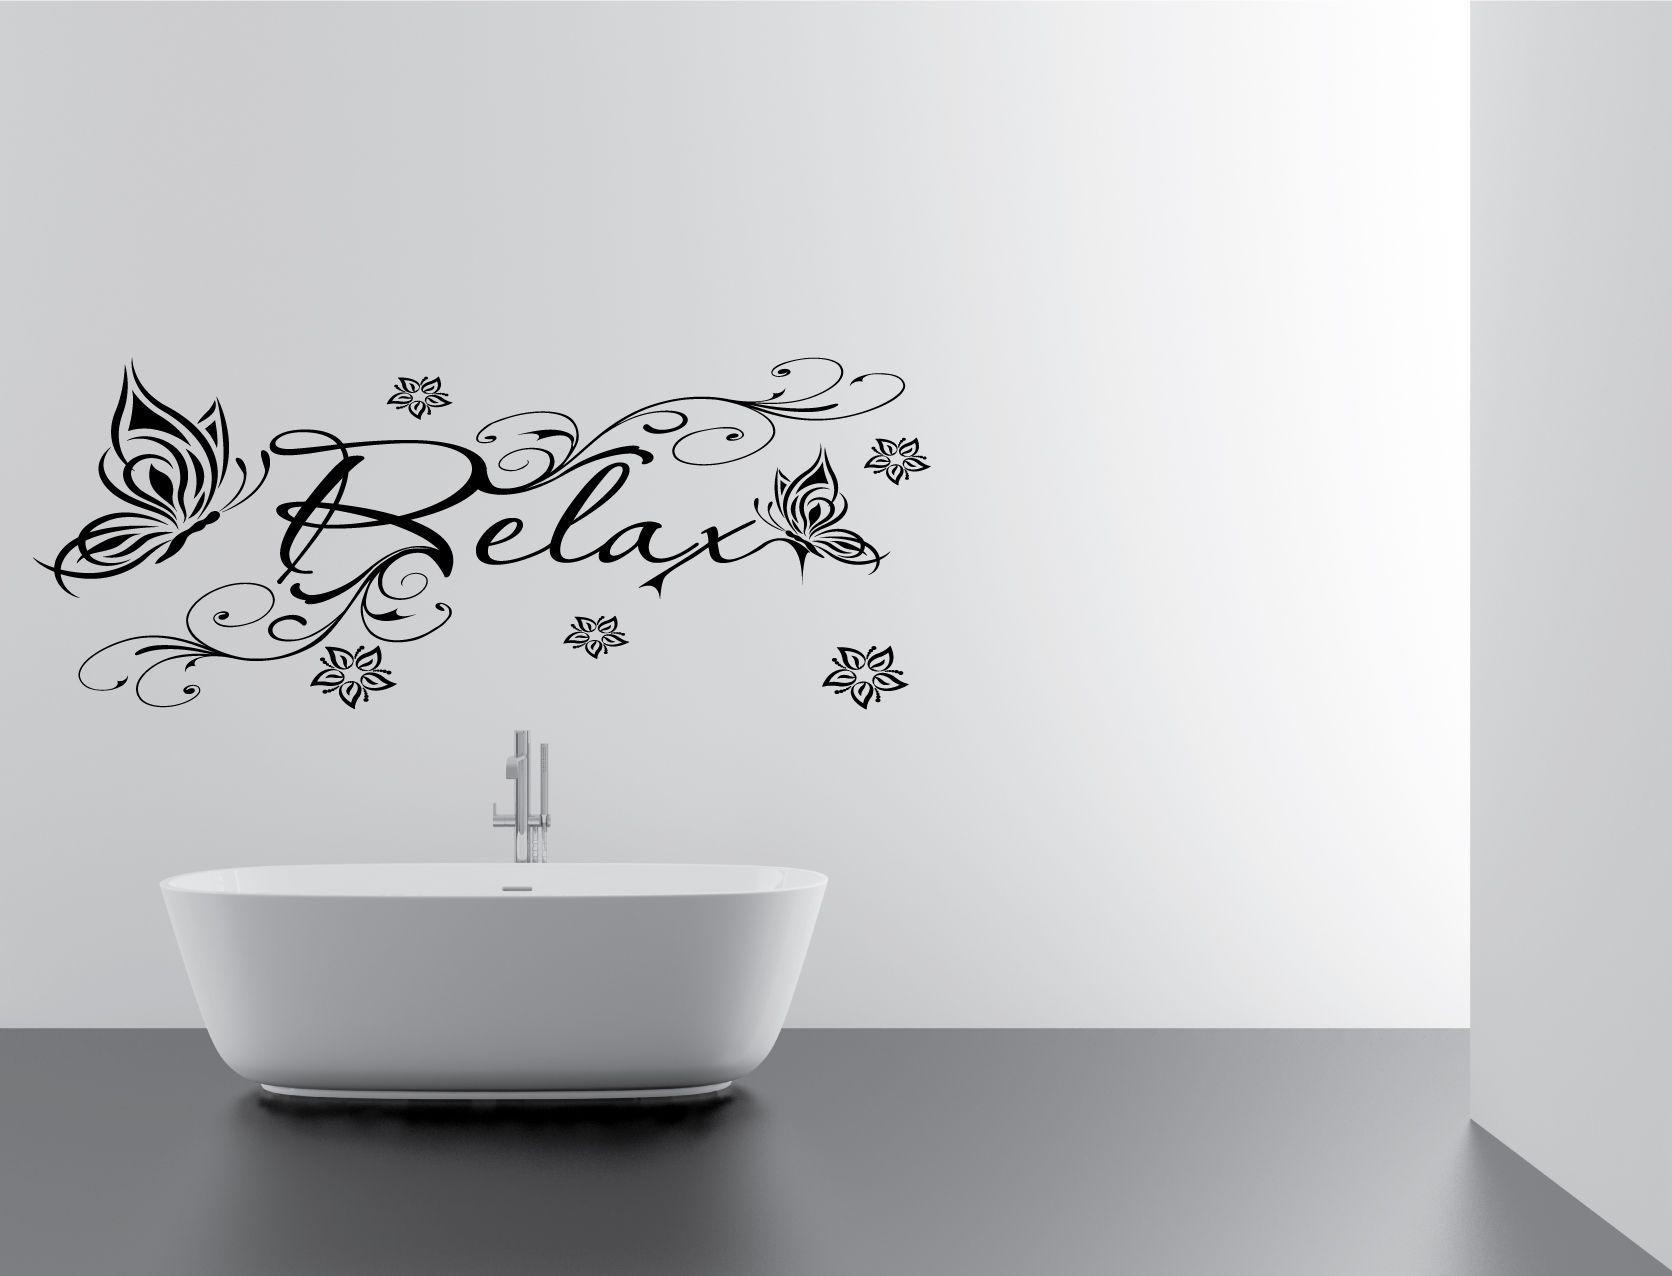 Floral Relax Bathroom Vinyl Wall Art, Decal, Sticker, Cloakroom With Shower Room Wall Art (Image 14 of 20)